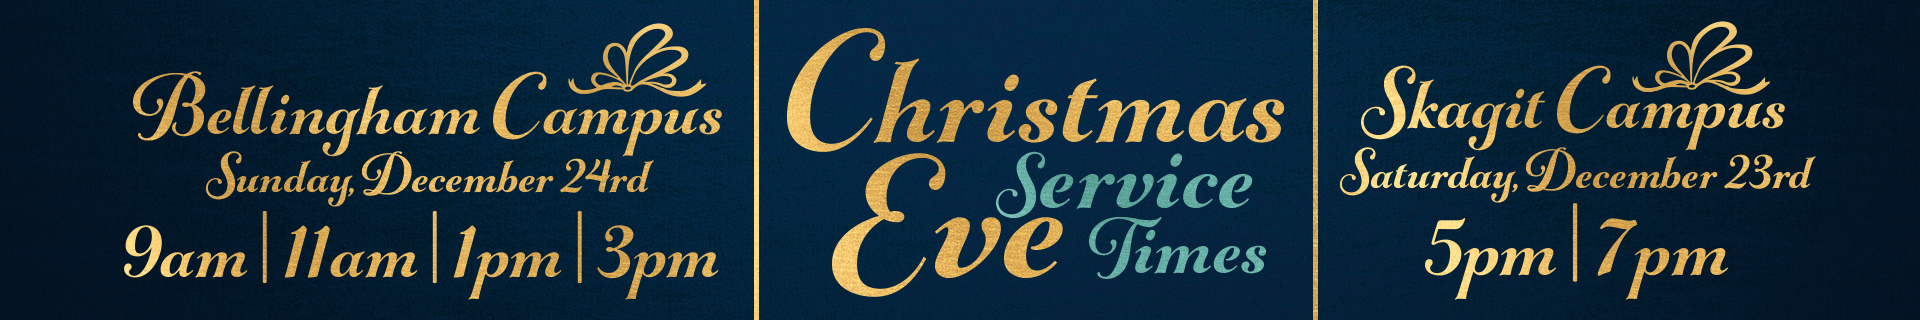 christmas eve service banner - photo #8